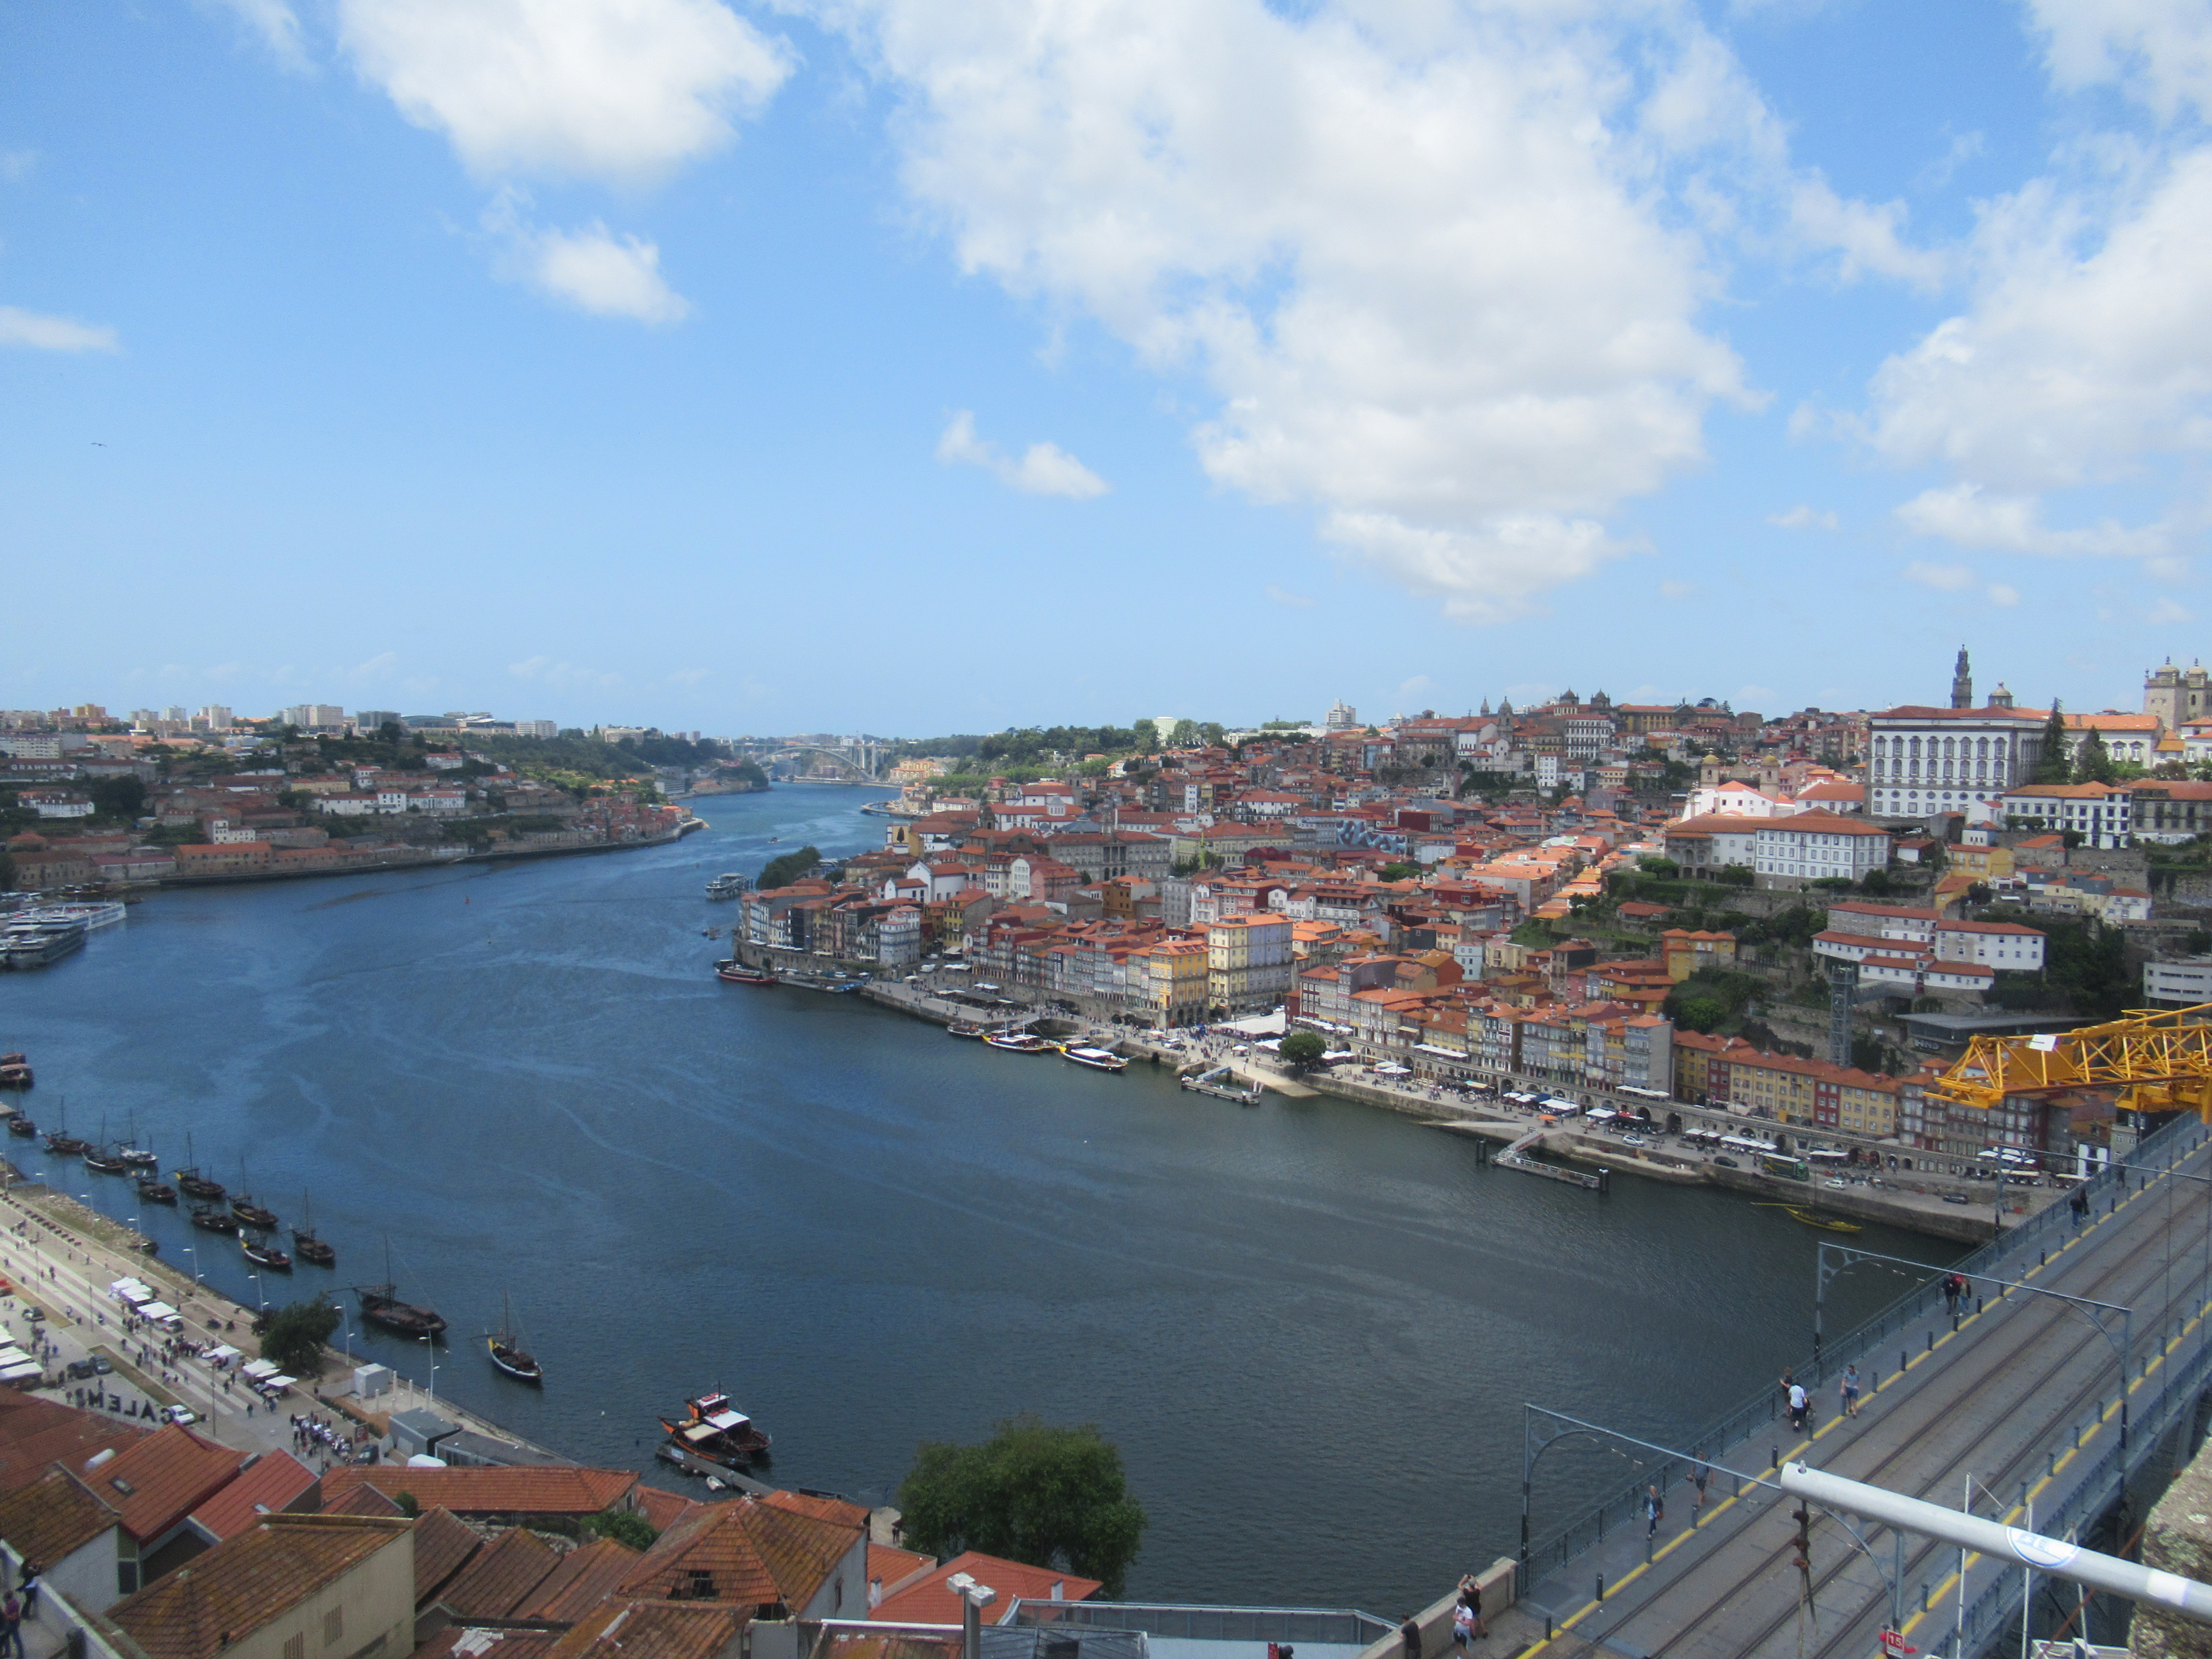 The Douro River of Porto, Portugal.